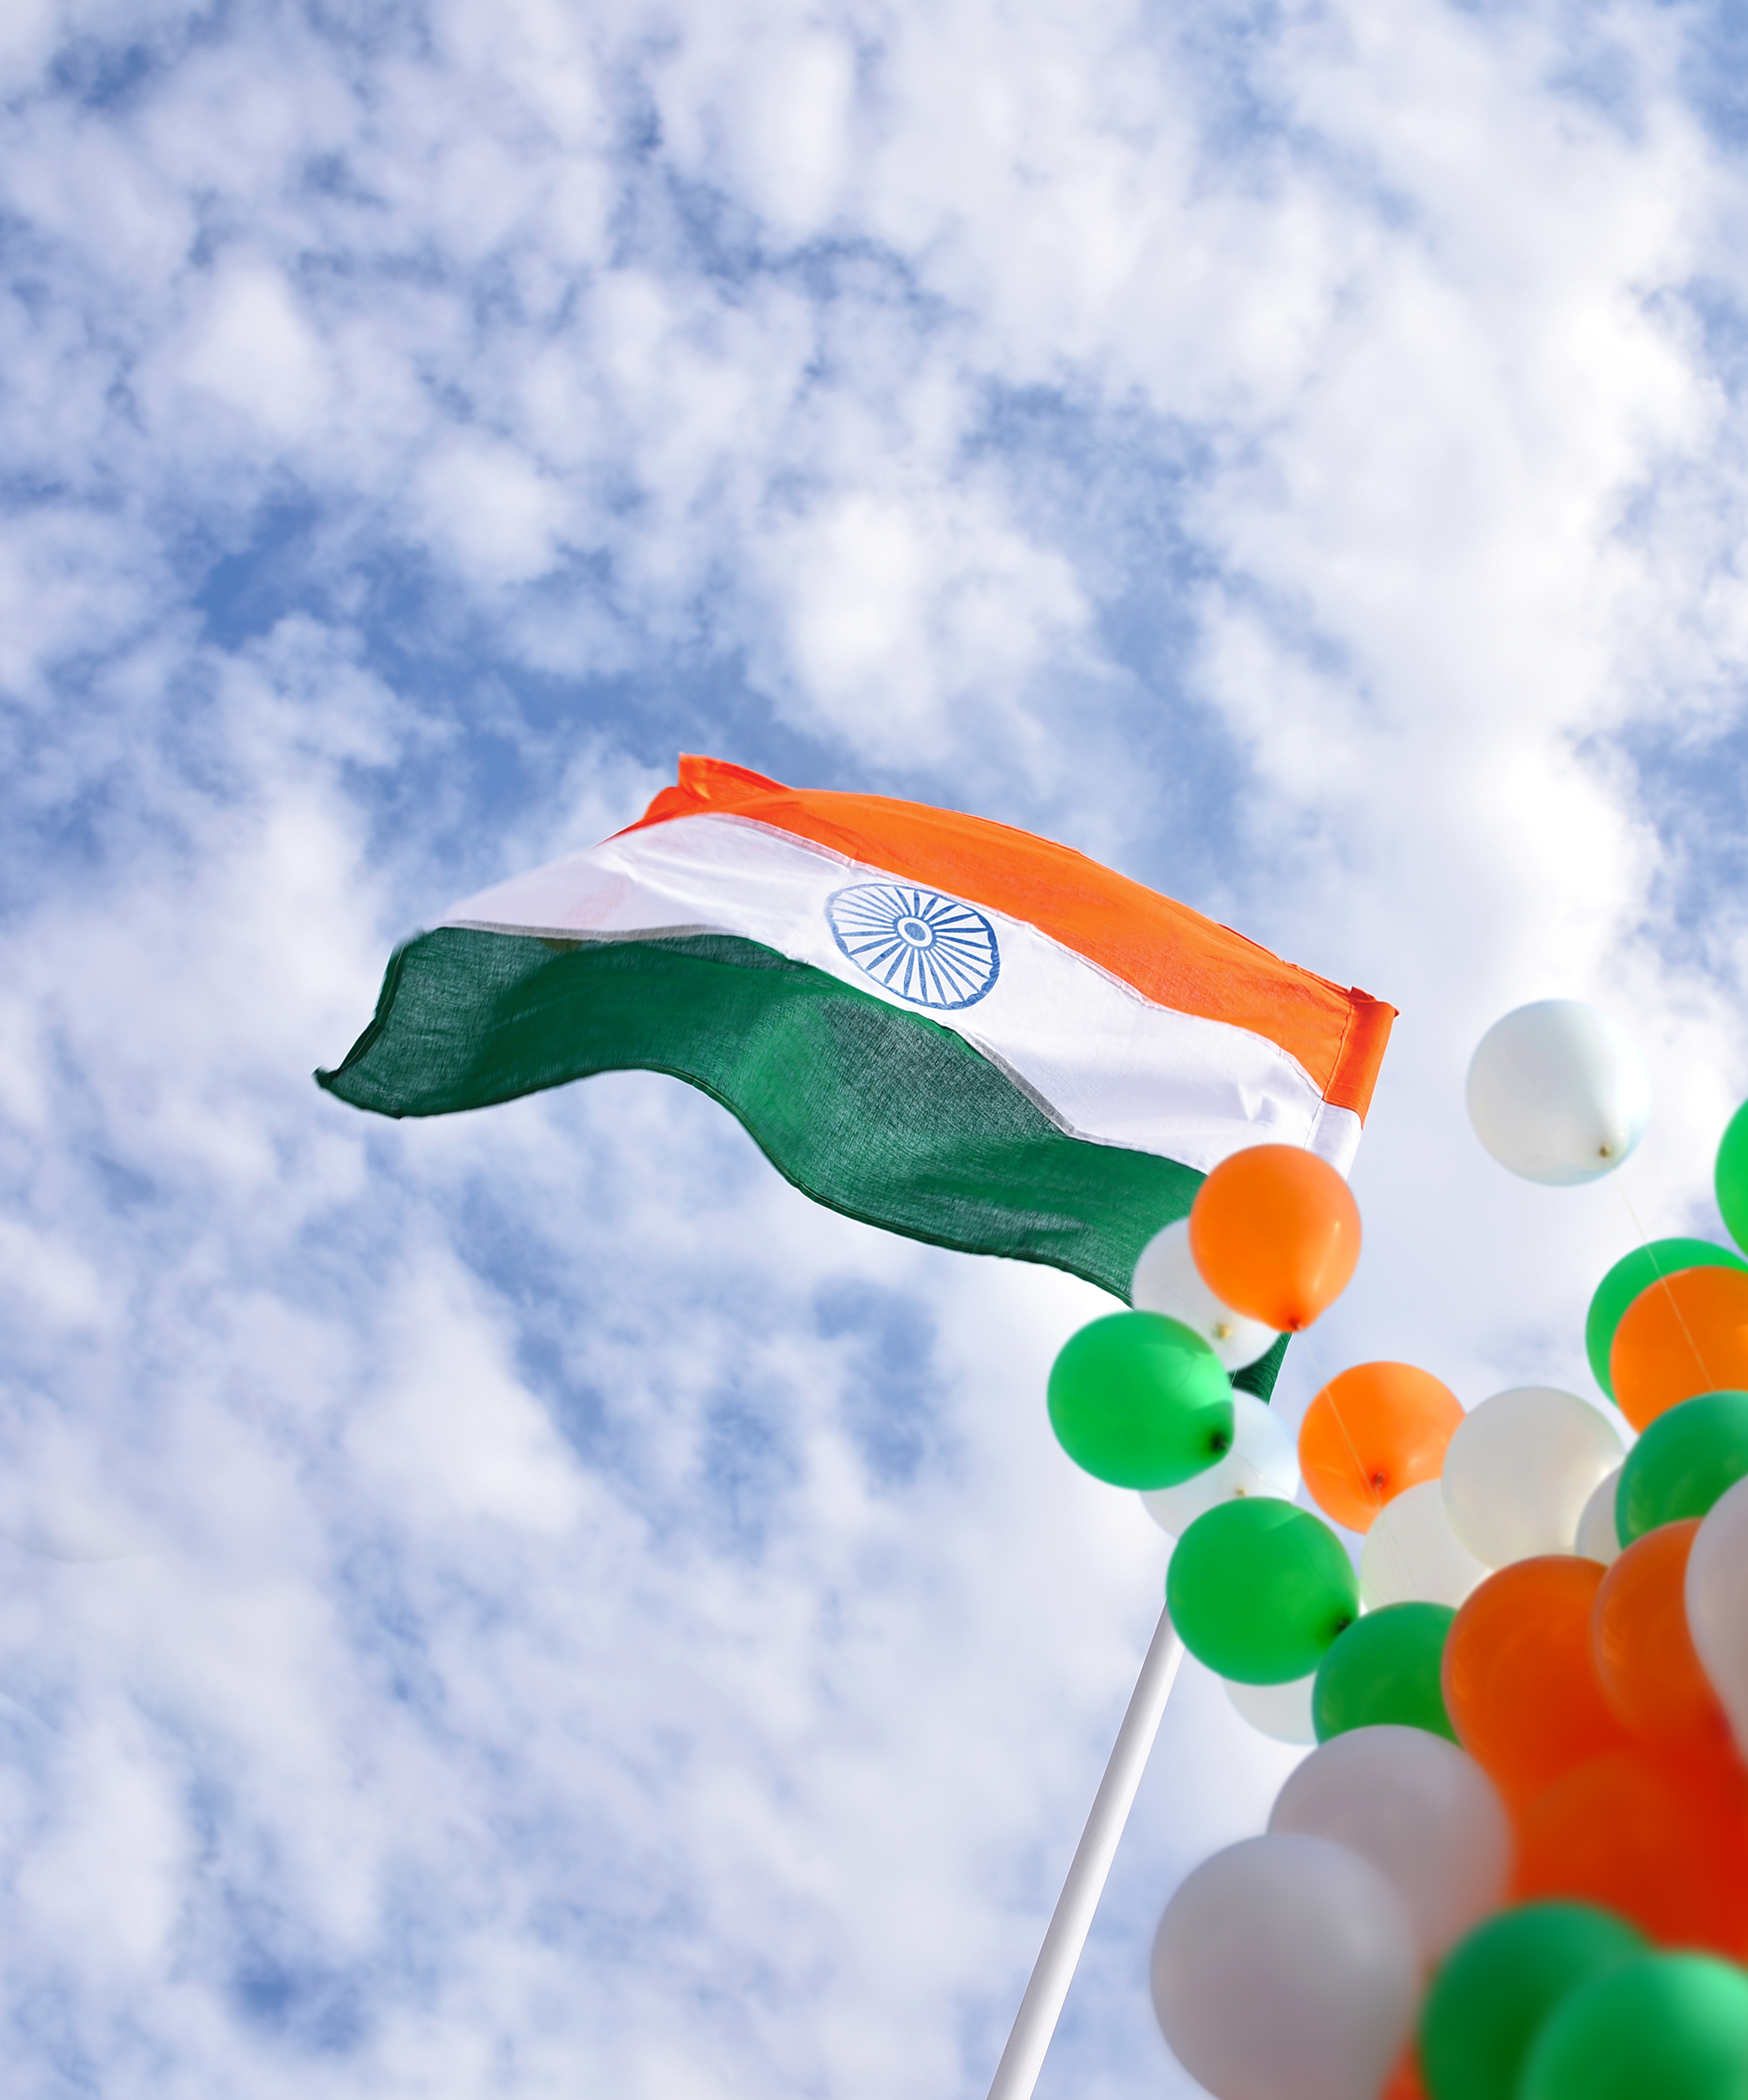 Republic Day 2020: Check out THESE 5 songs which invoke patriotism and devotion for India